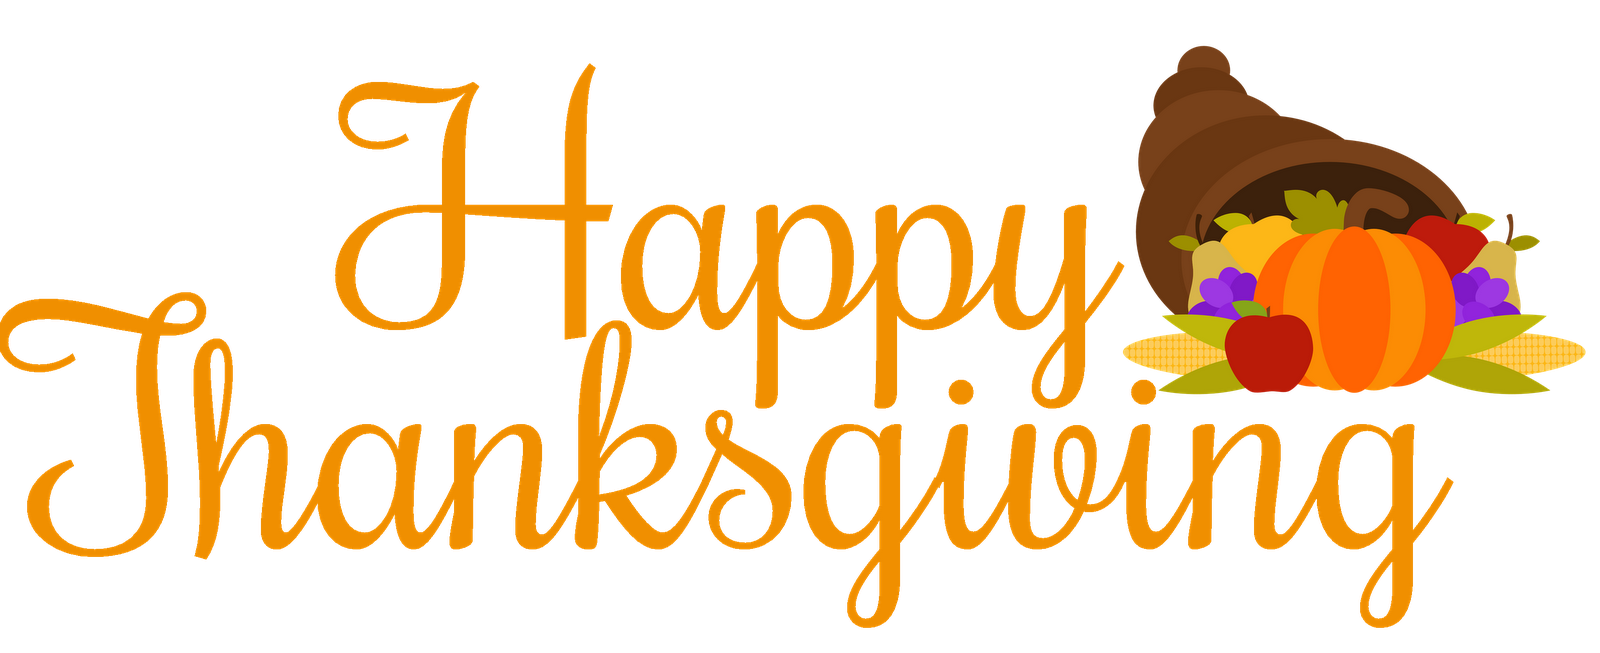 Happy thanksgiving clipart turkey day friend. Banner png image